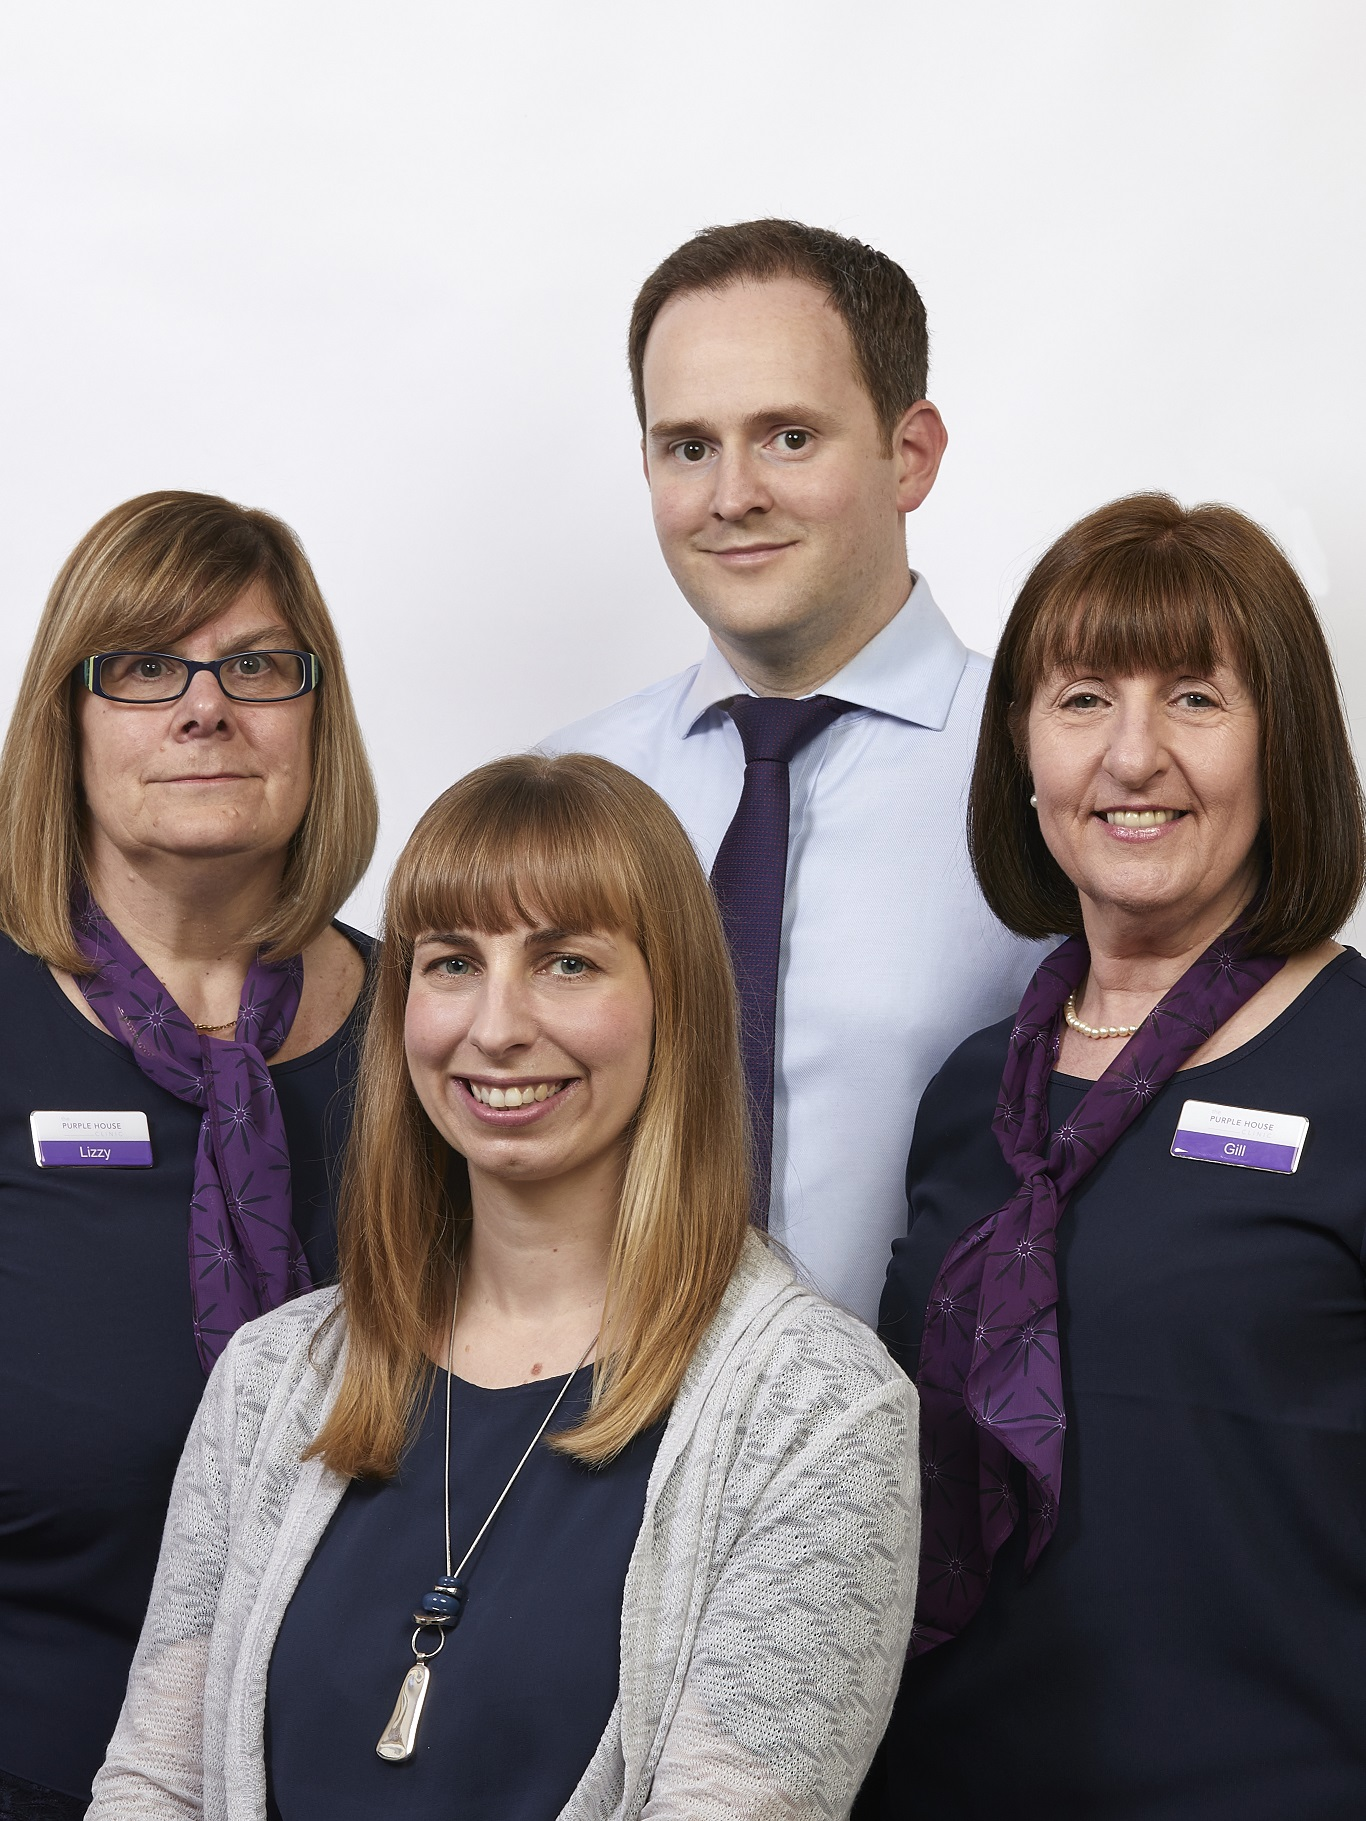 Leicestershire psychology clinic expands its services across the UK